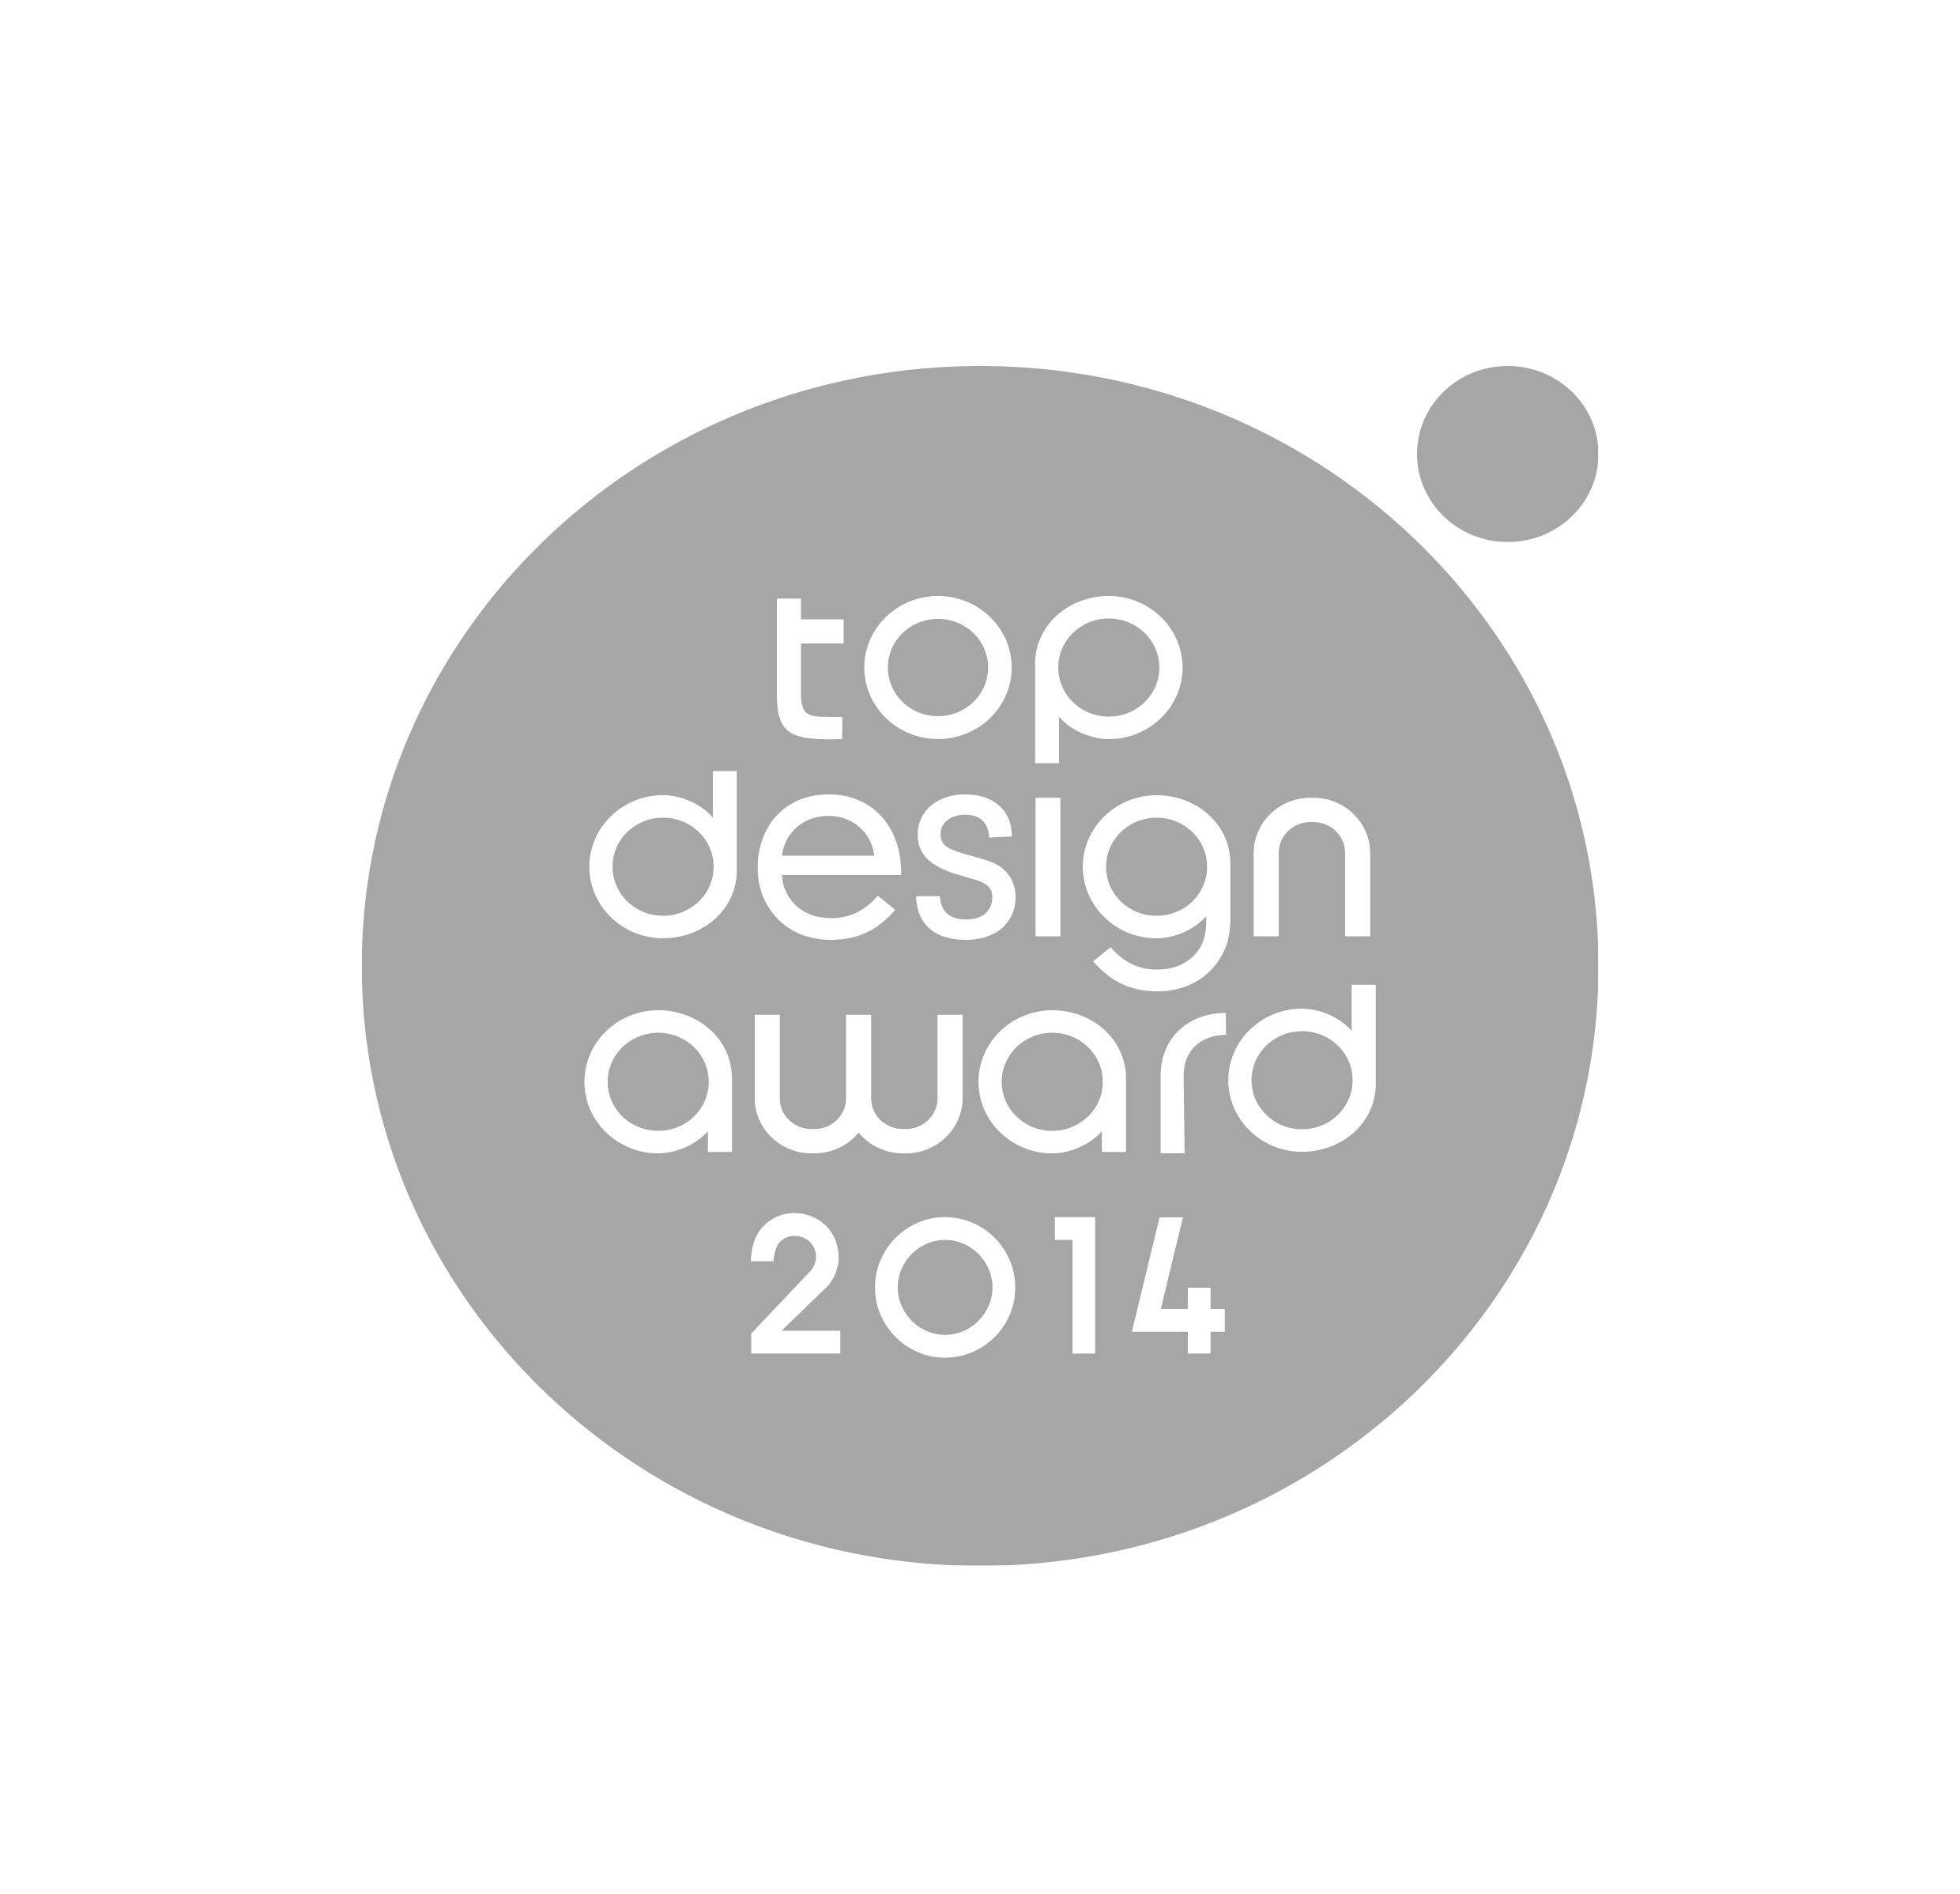 top design award 2014